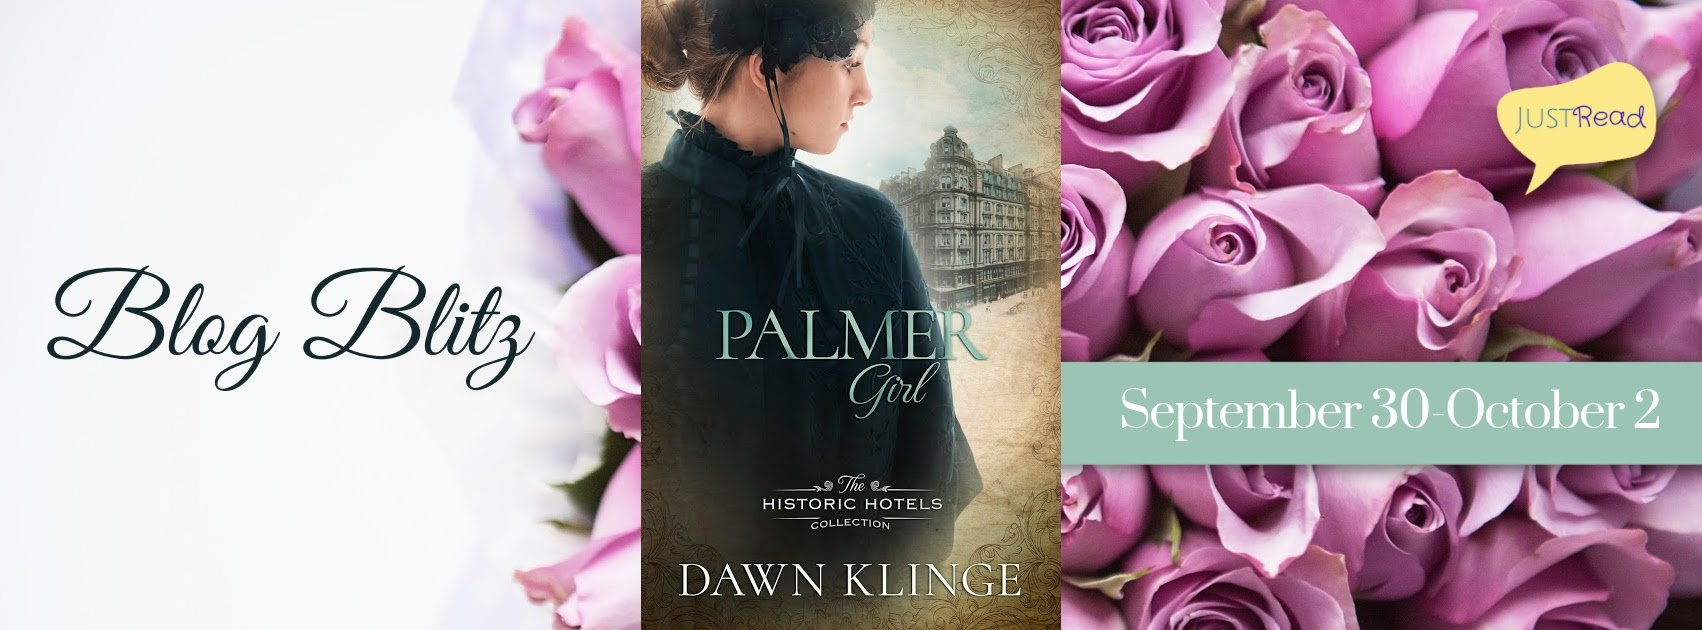 Palmer Girl Blog Blitz